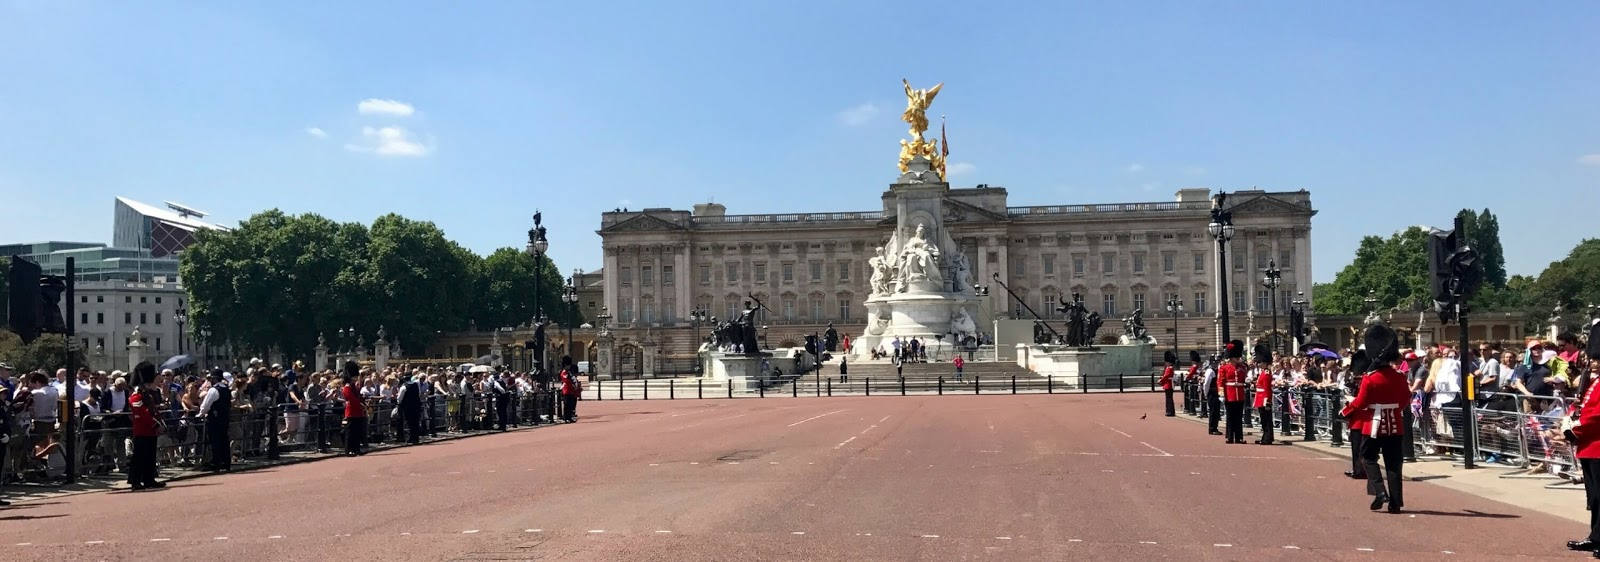 Buckingham Palace, taken from the middle of the road